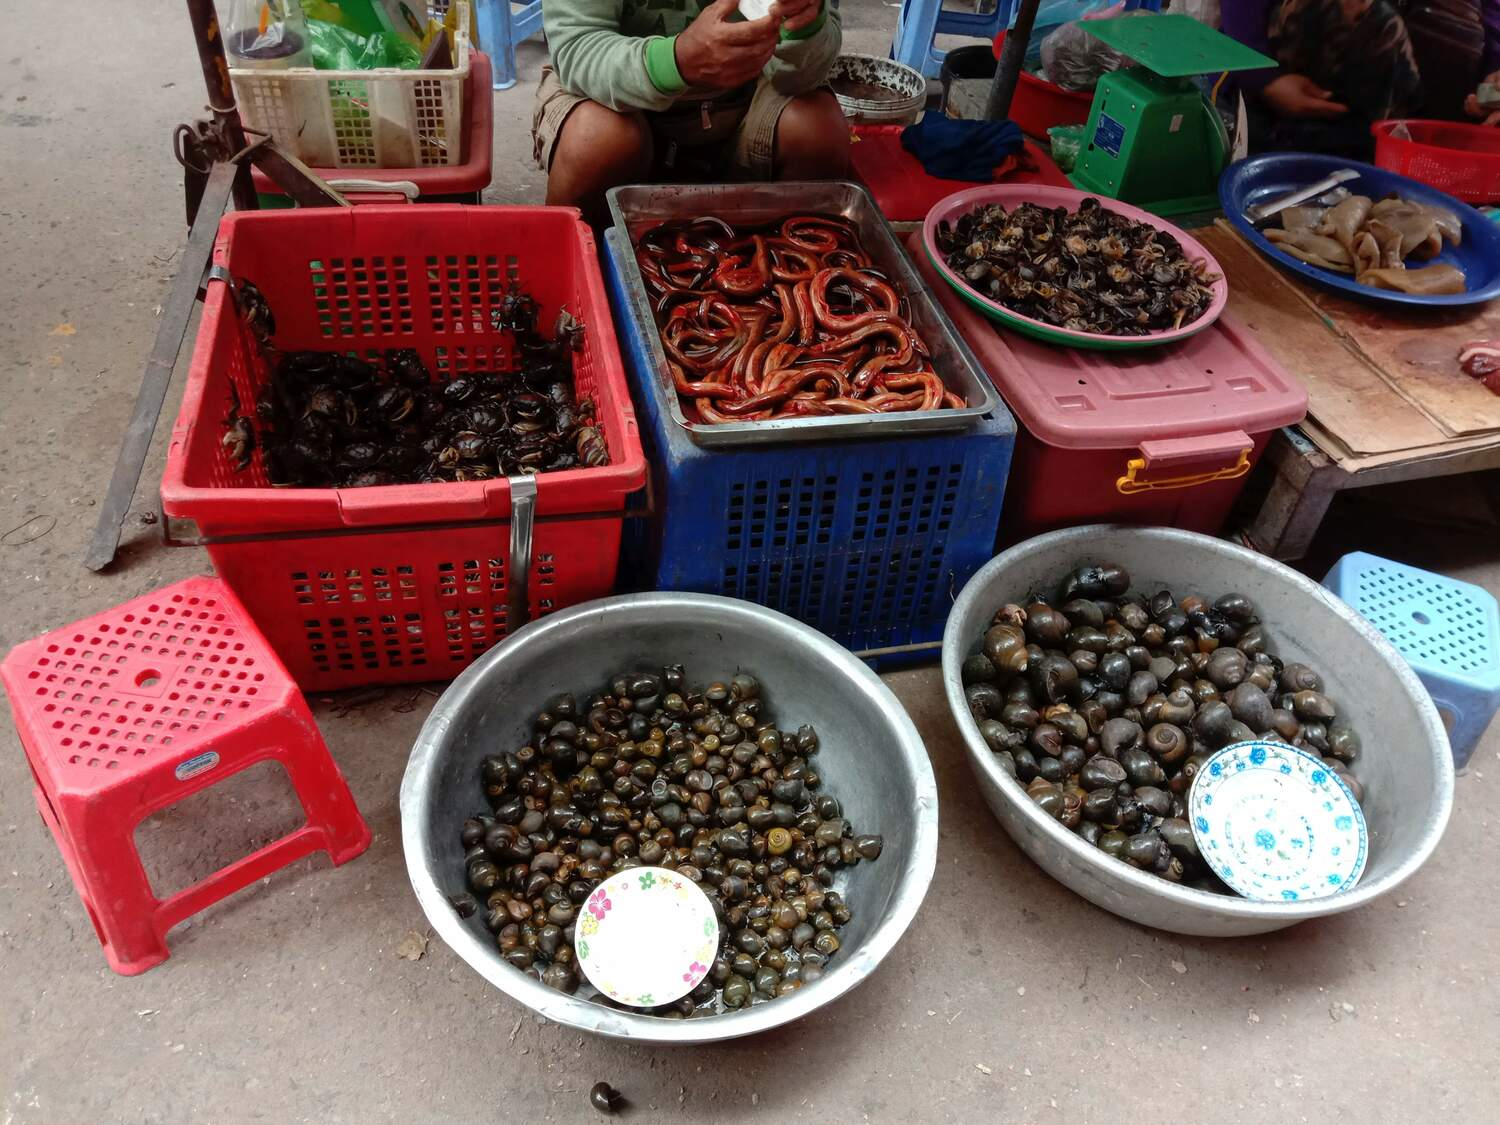 Market store in Cambodia. A reduction in the interaction between people, wildlife and livestock along with effective protection of habitats and wildlife, is the only way to reduce the risk of future zoonoses like Covid-19